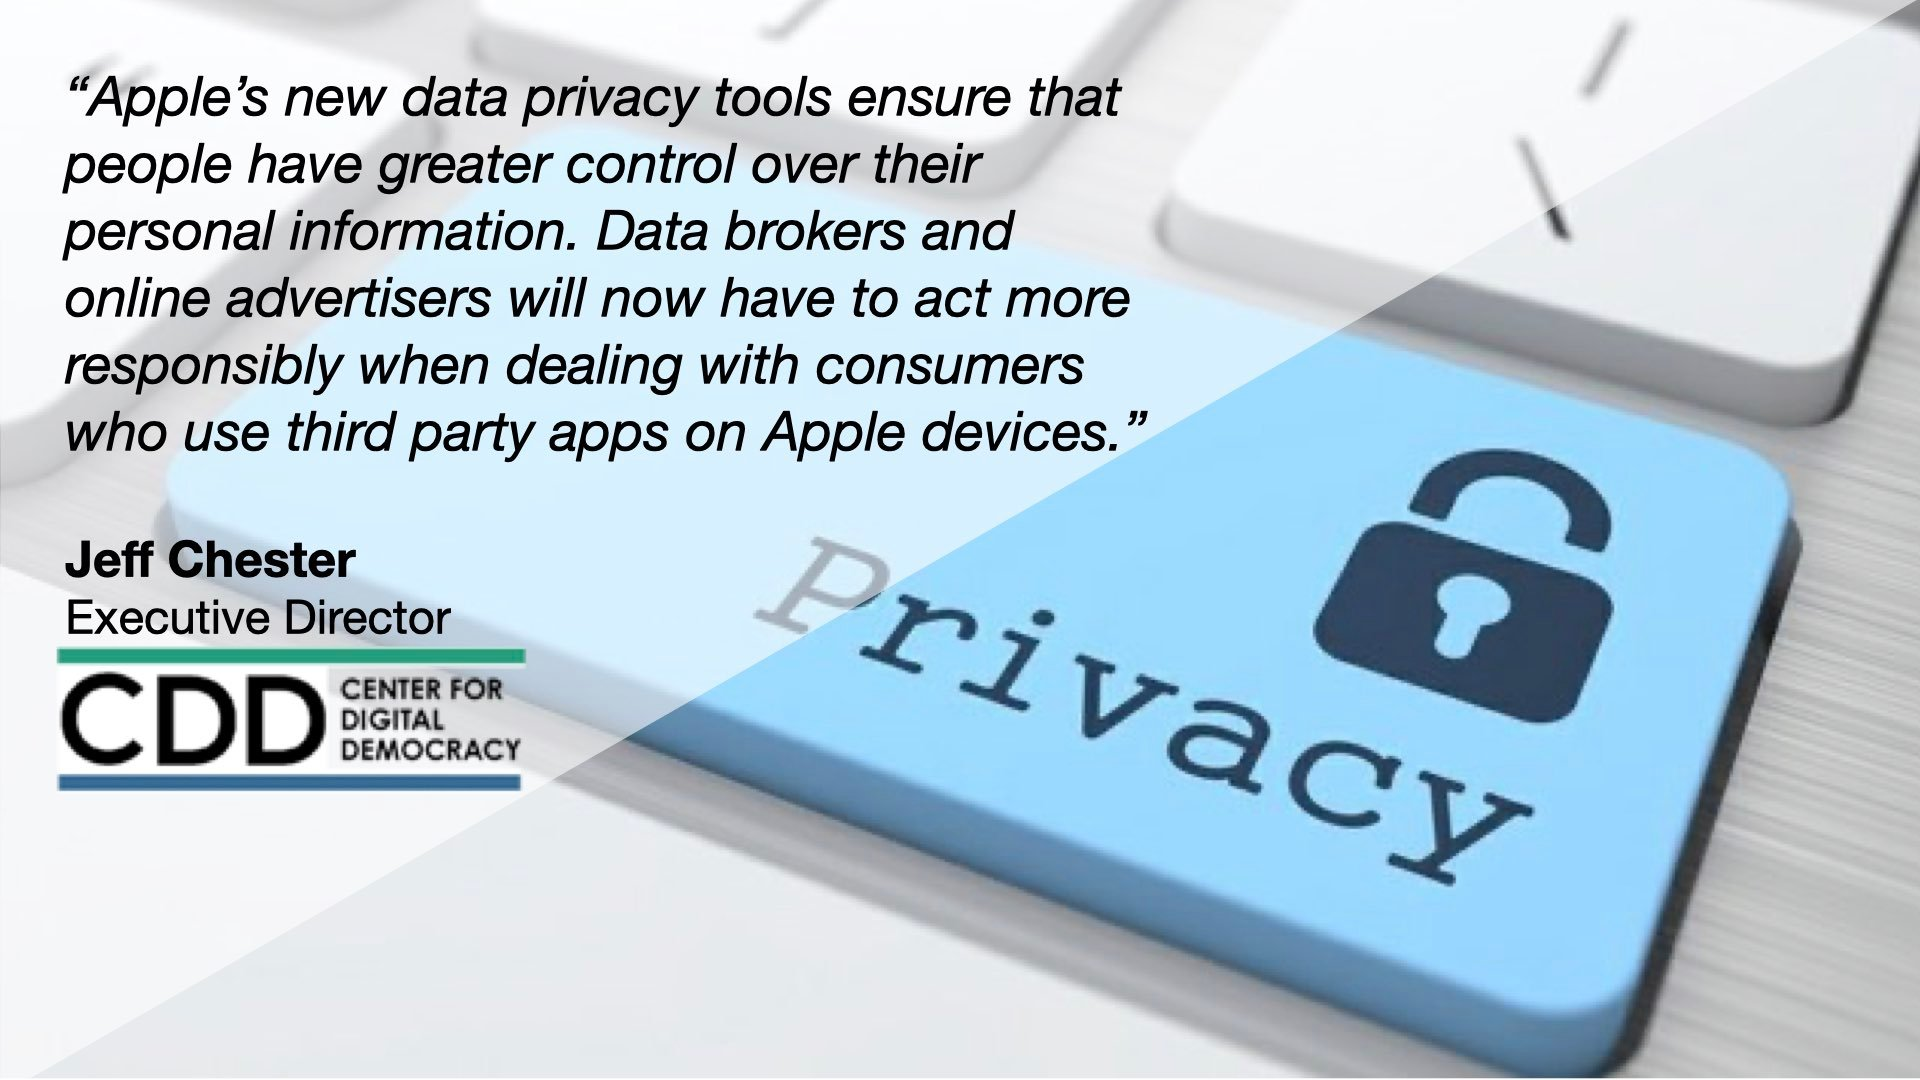 """Apple's new data privacy tools ensure that people have greater control over their personal information. Data brokers and online advertisers will now have to act more responsibly when dealing with consumers who use third party apps on Apple devices."" Jeff Chester"